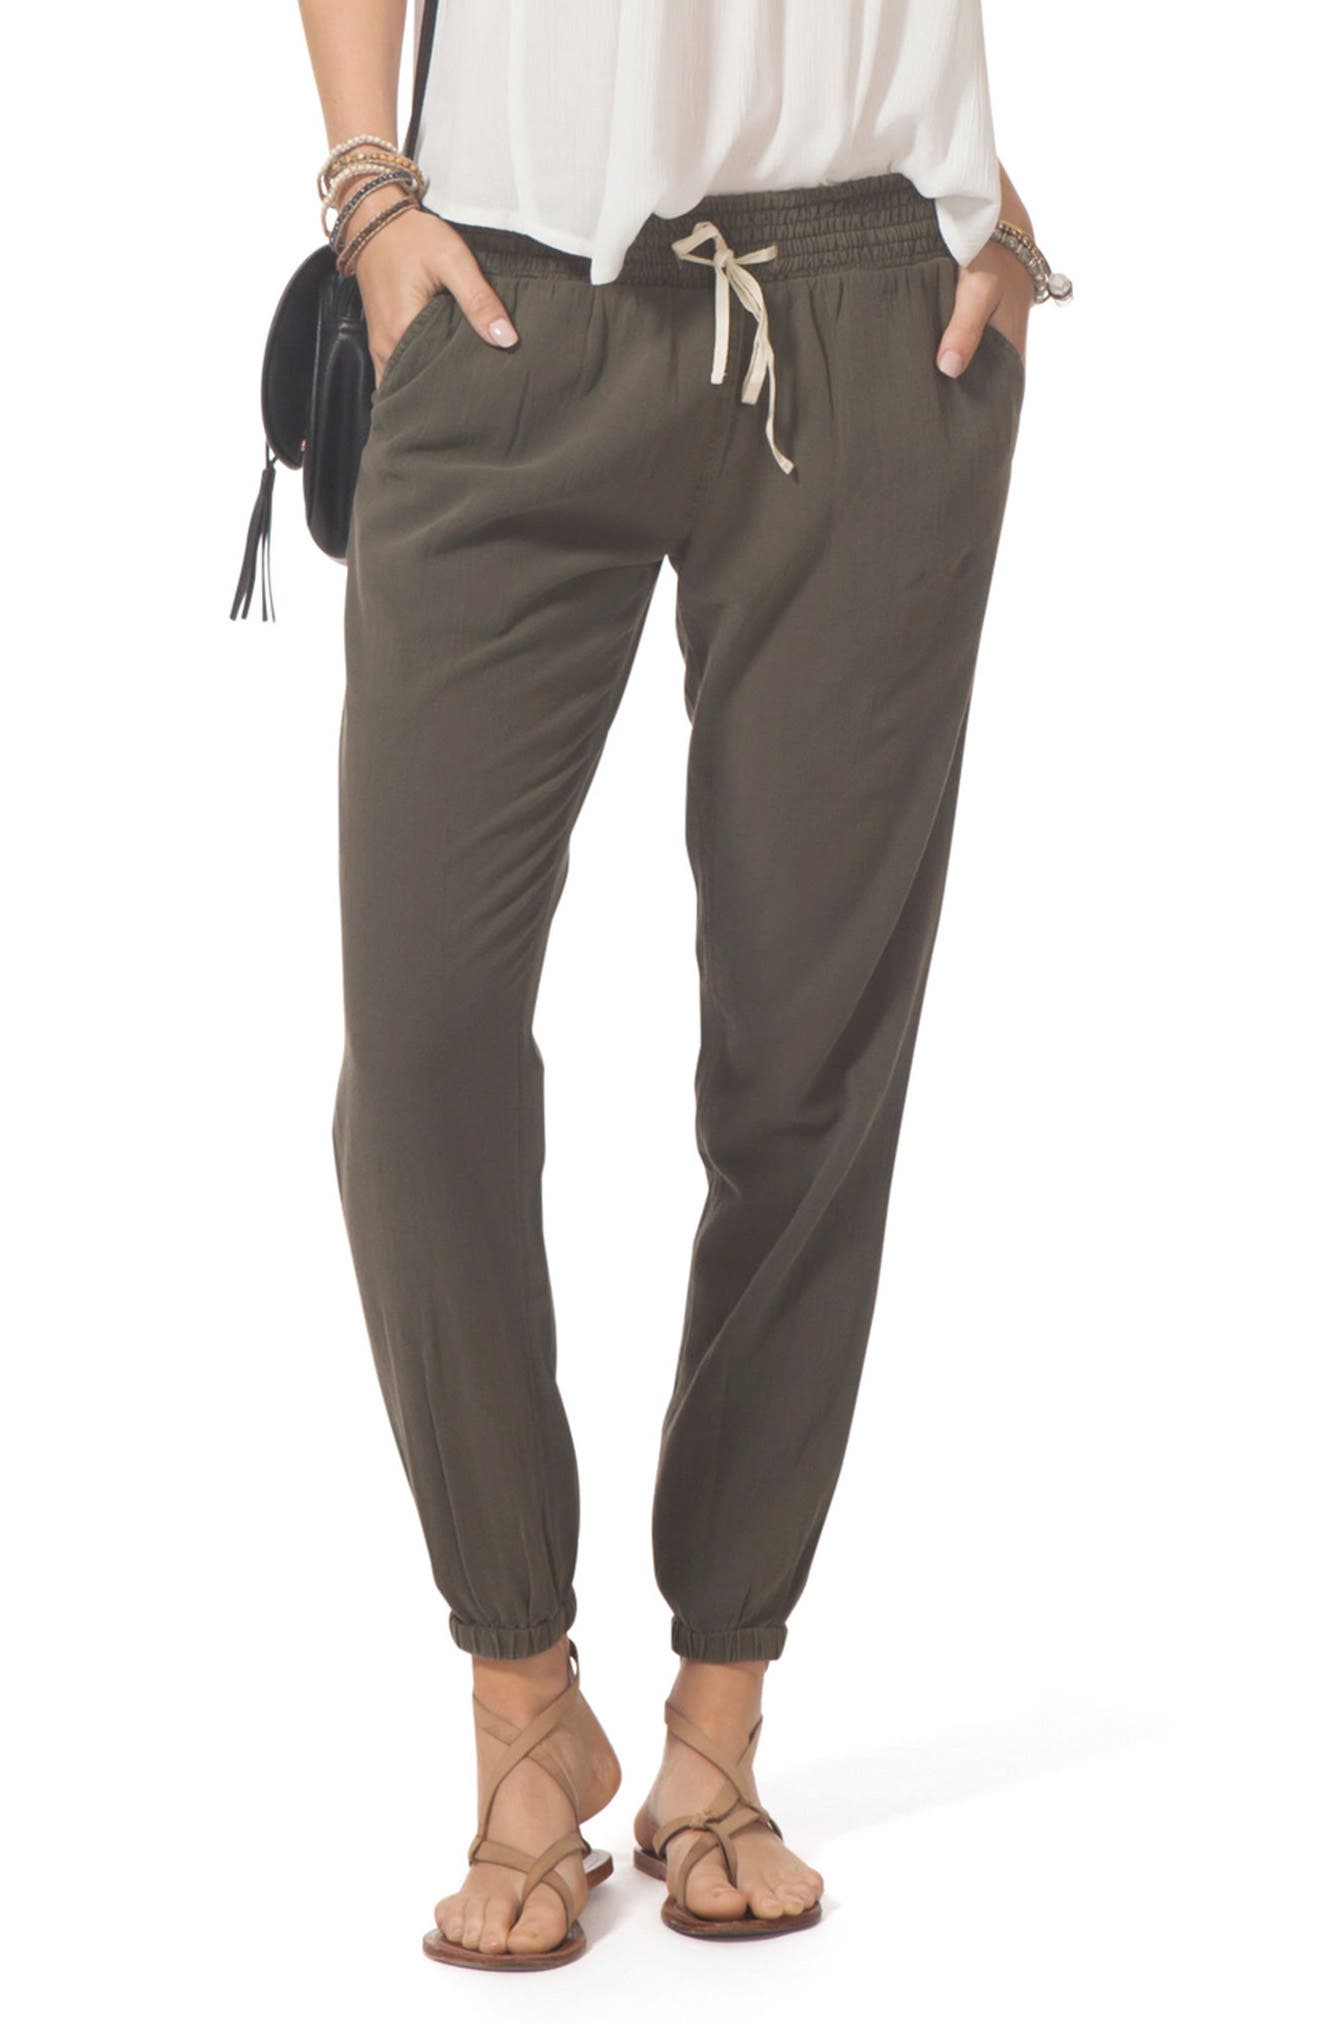 Rip Curl Classic Surf Pants